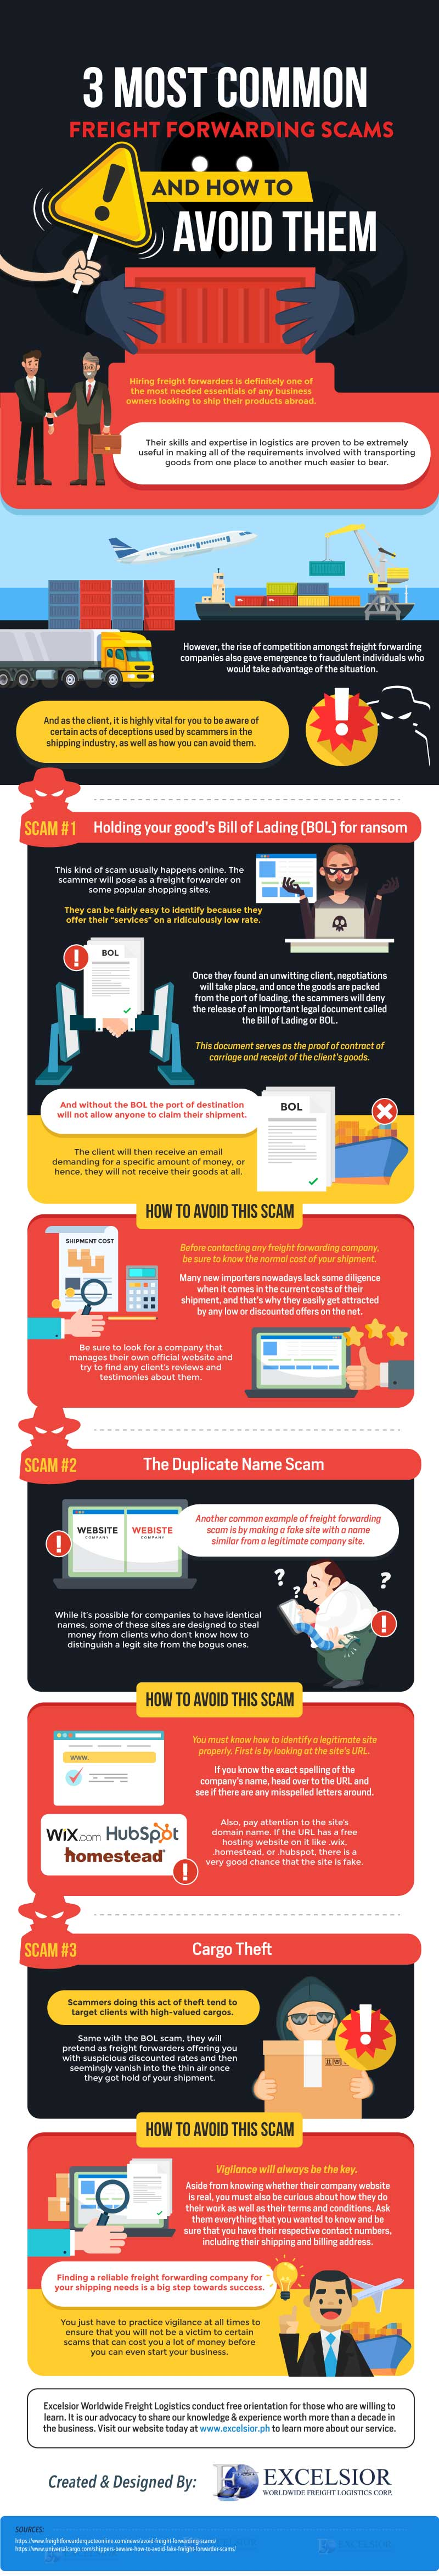 3-Most-Common-Freight-Forwarding-Scams-And-How-To-Avoid-Them